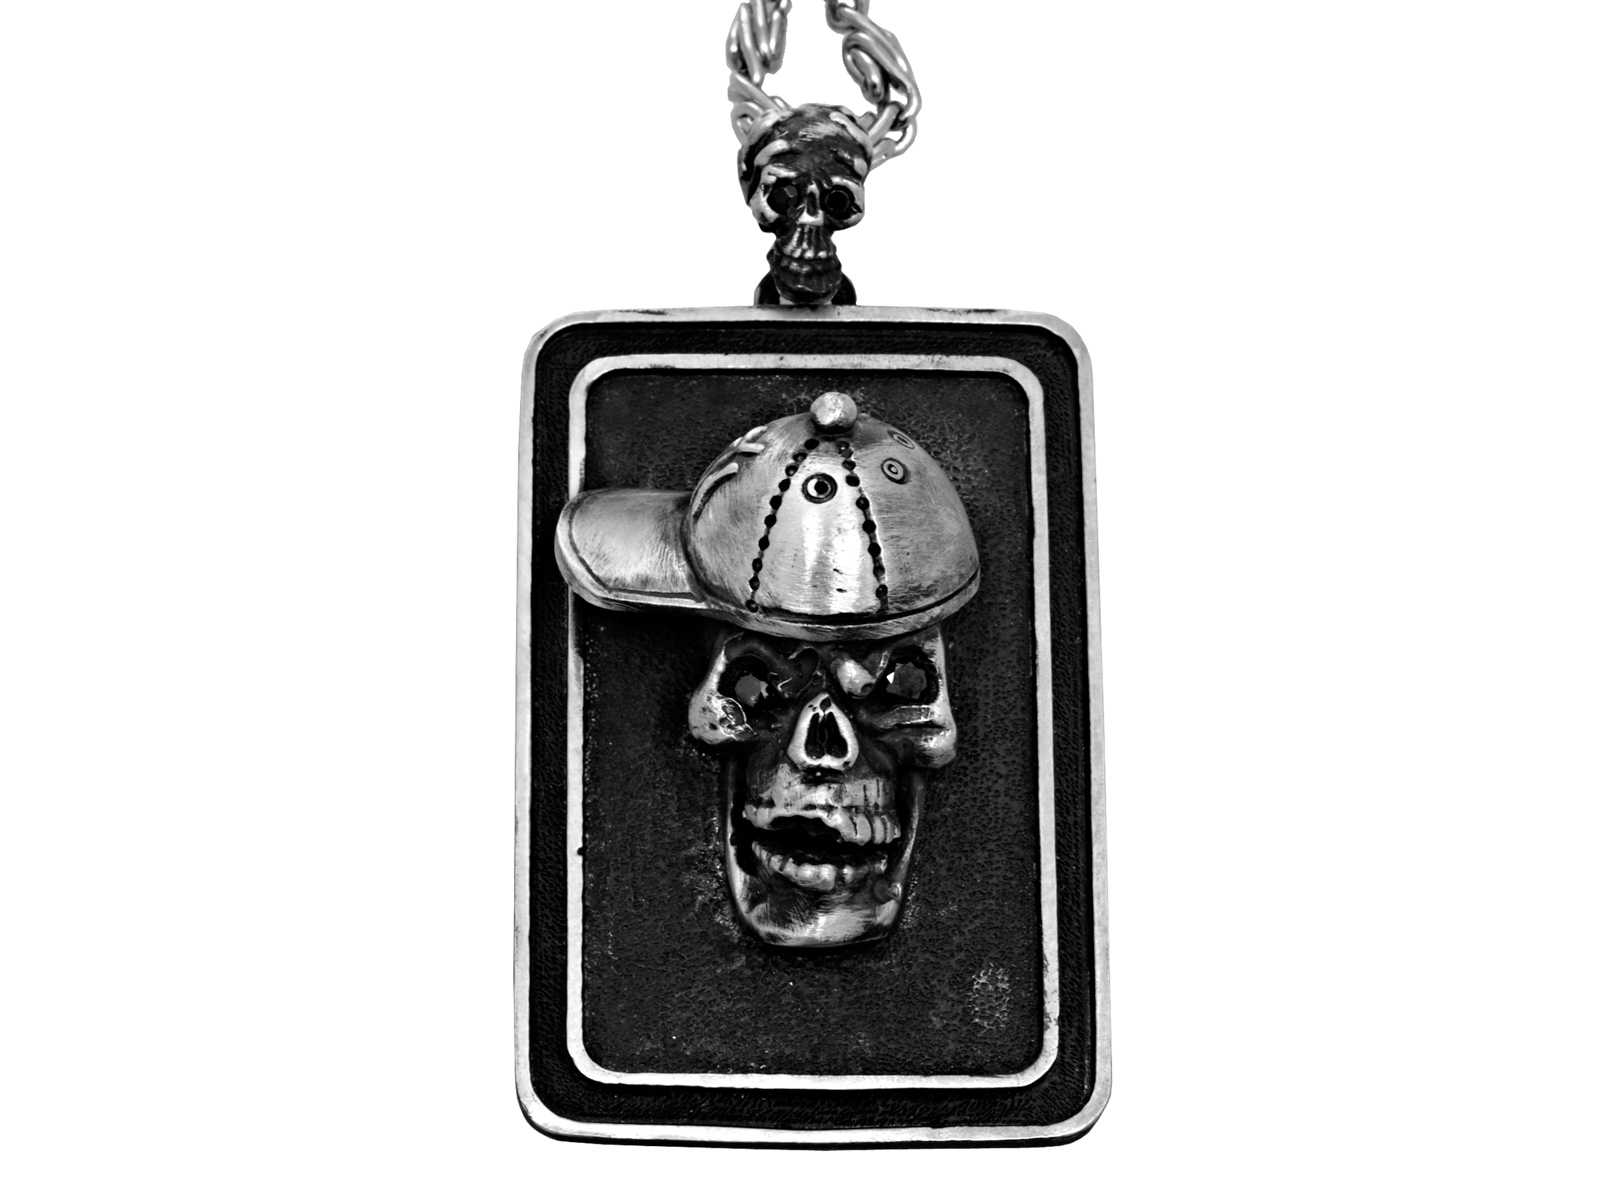 DT102-B The Player Skull Dog Tag in Sterling Silver with Black Diamonds, designed by Steve Soffa